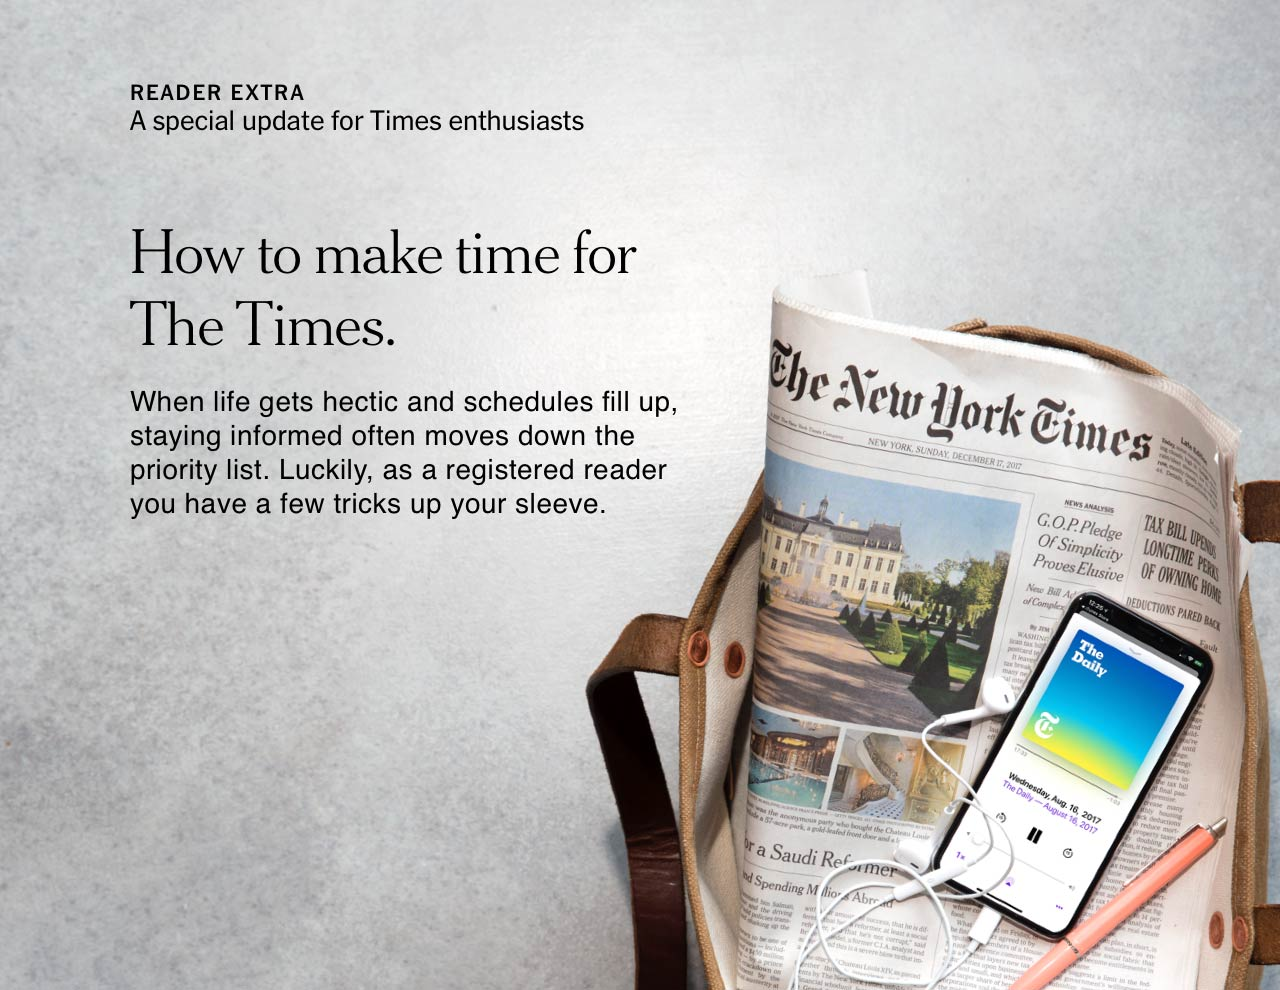 READER EXTRA | A special update for Times enthusiasts | How to make time for The Times.